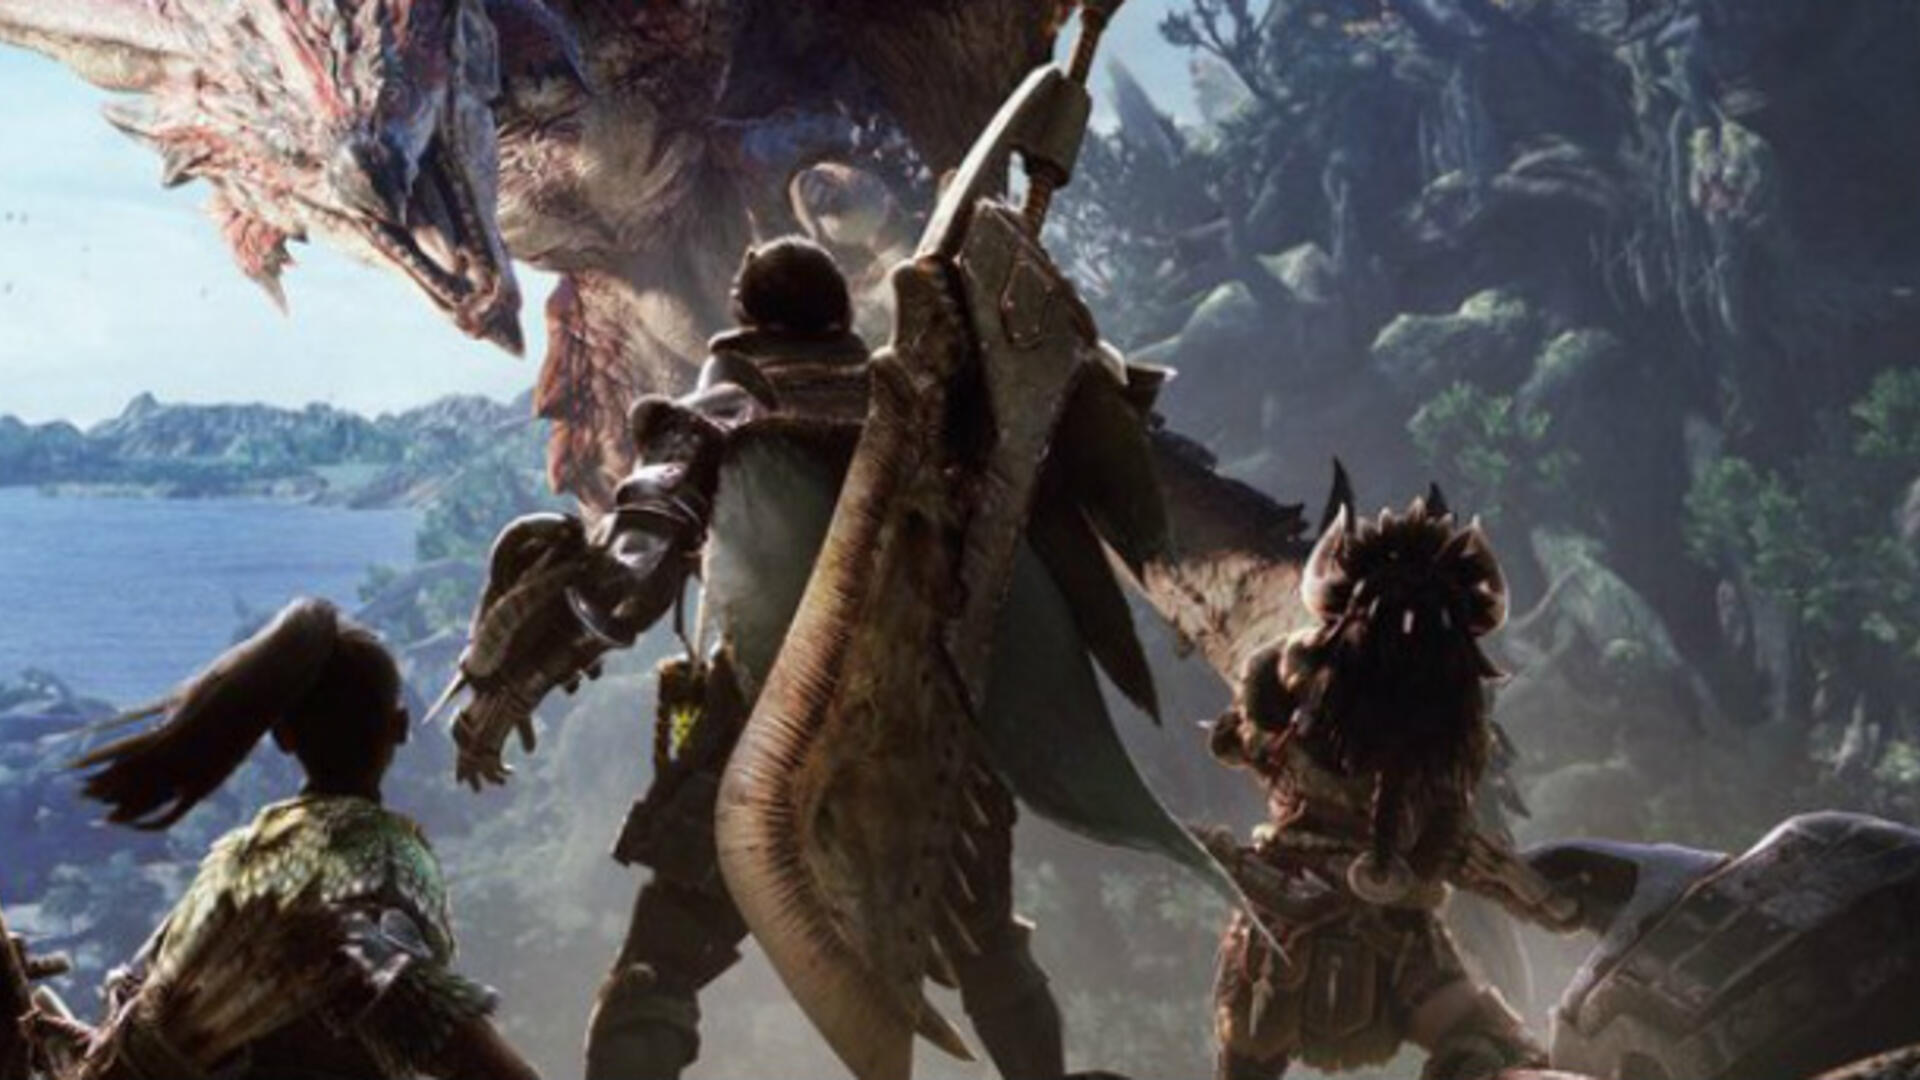 Monster Hunter World Brings The Franchise To PS4 and Xbox One in Early 2018